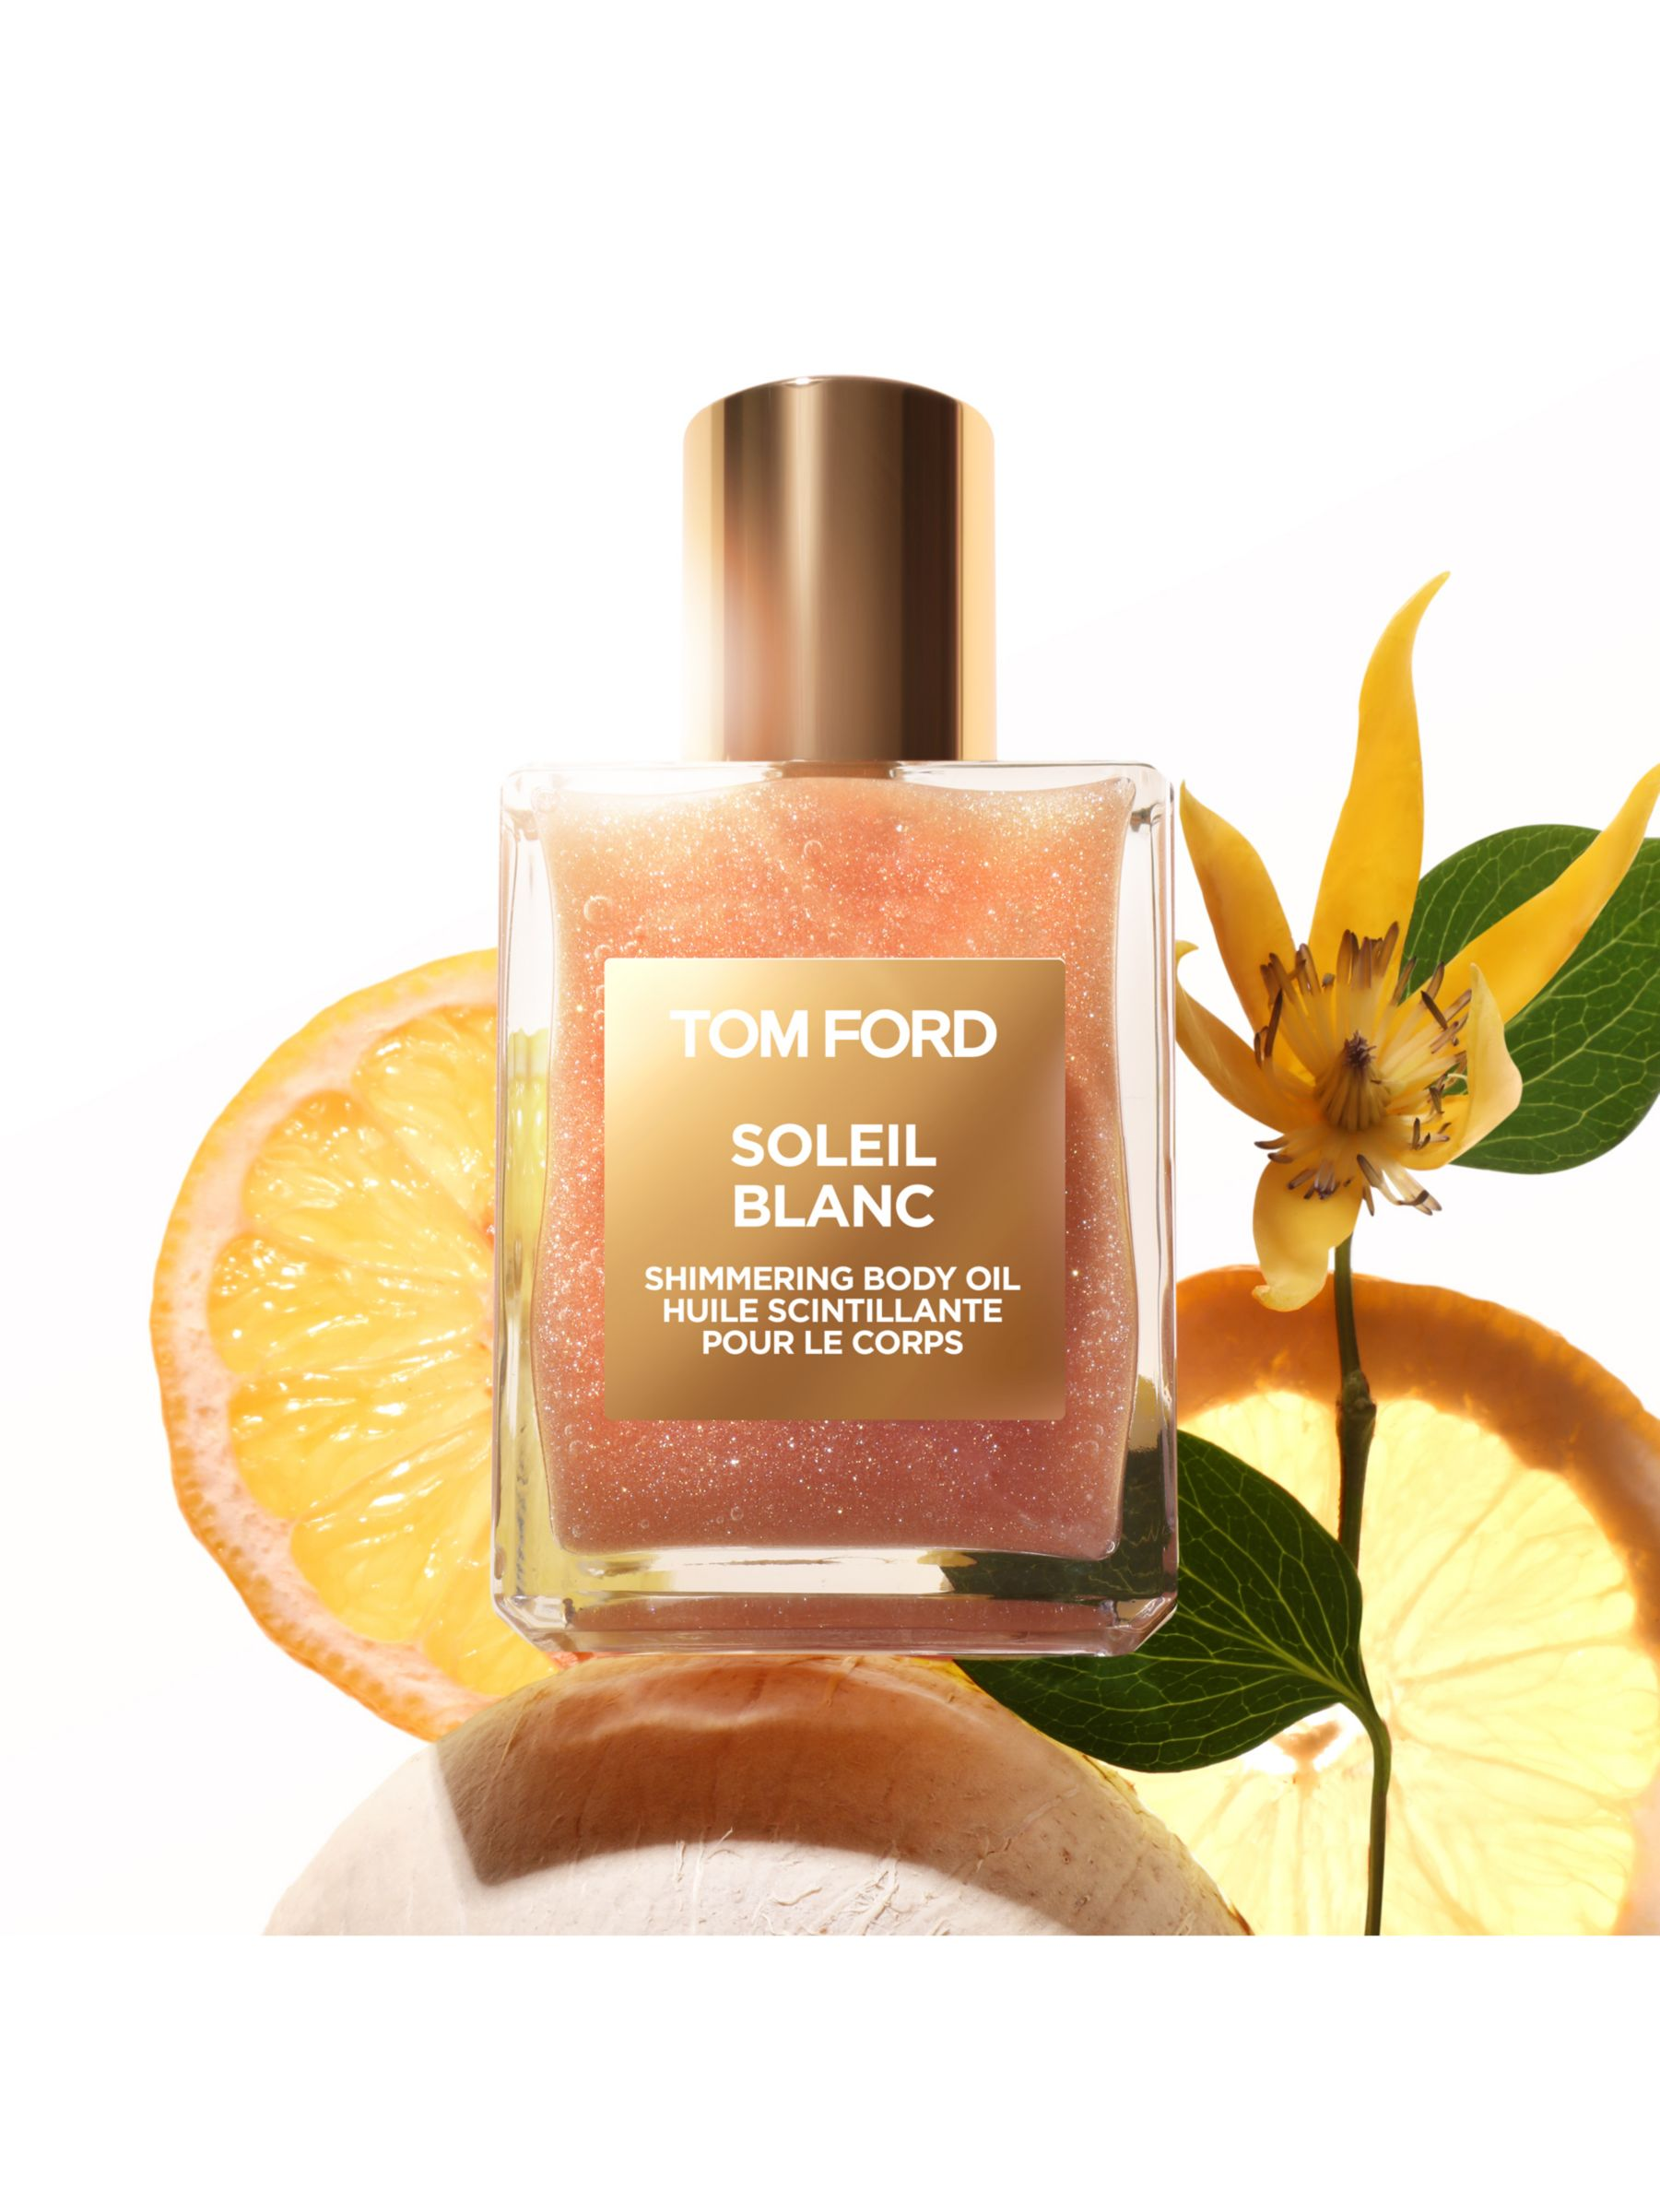 Tom Ford Soleil Blanc Shimmering Body Oil 45ml At John Lewis Partners